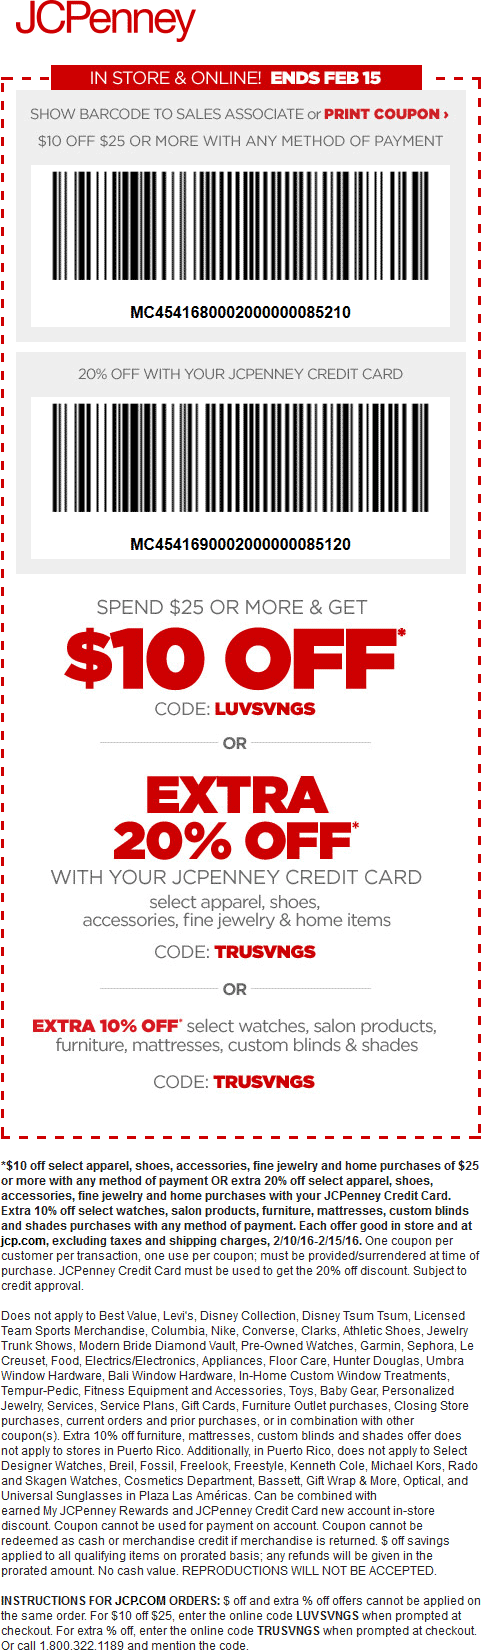 JCPenney Coupon February 2017 $10 off $25 at JCPenney, or online via promo code LUVSVNGS